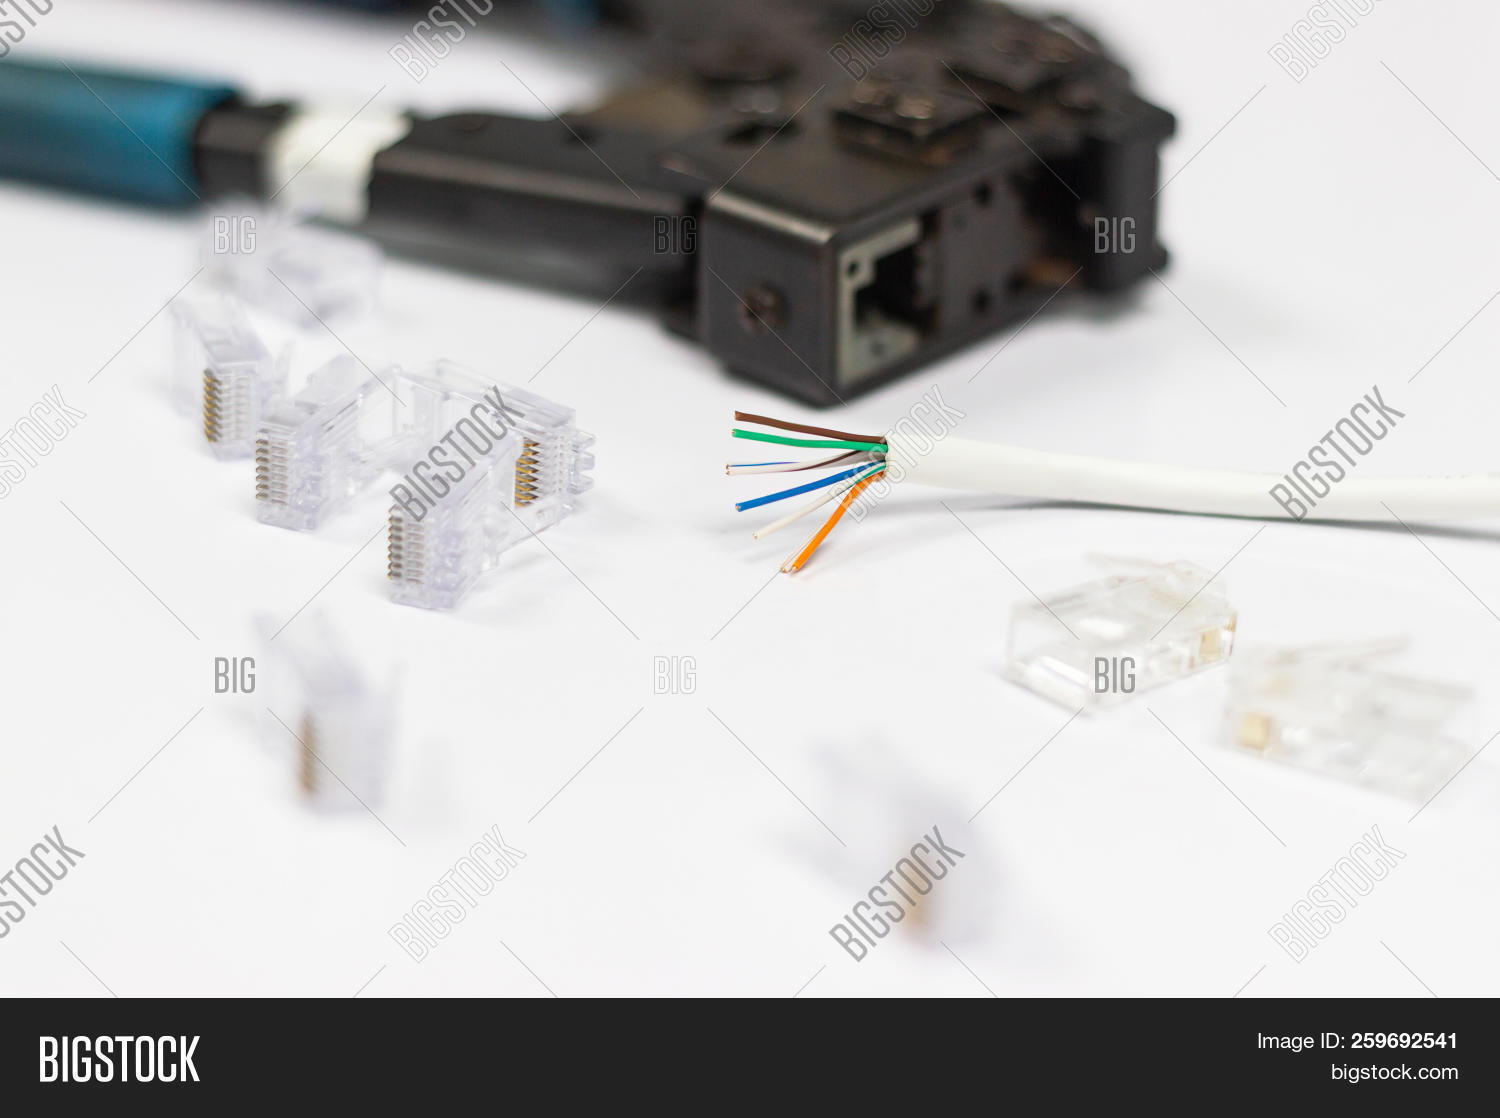 Cat 5 Wiring Diagram A Collection Of Free Picture Wiring Diagram